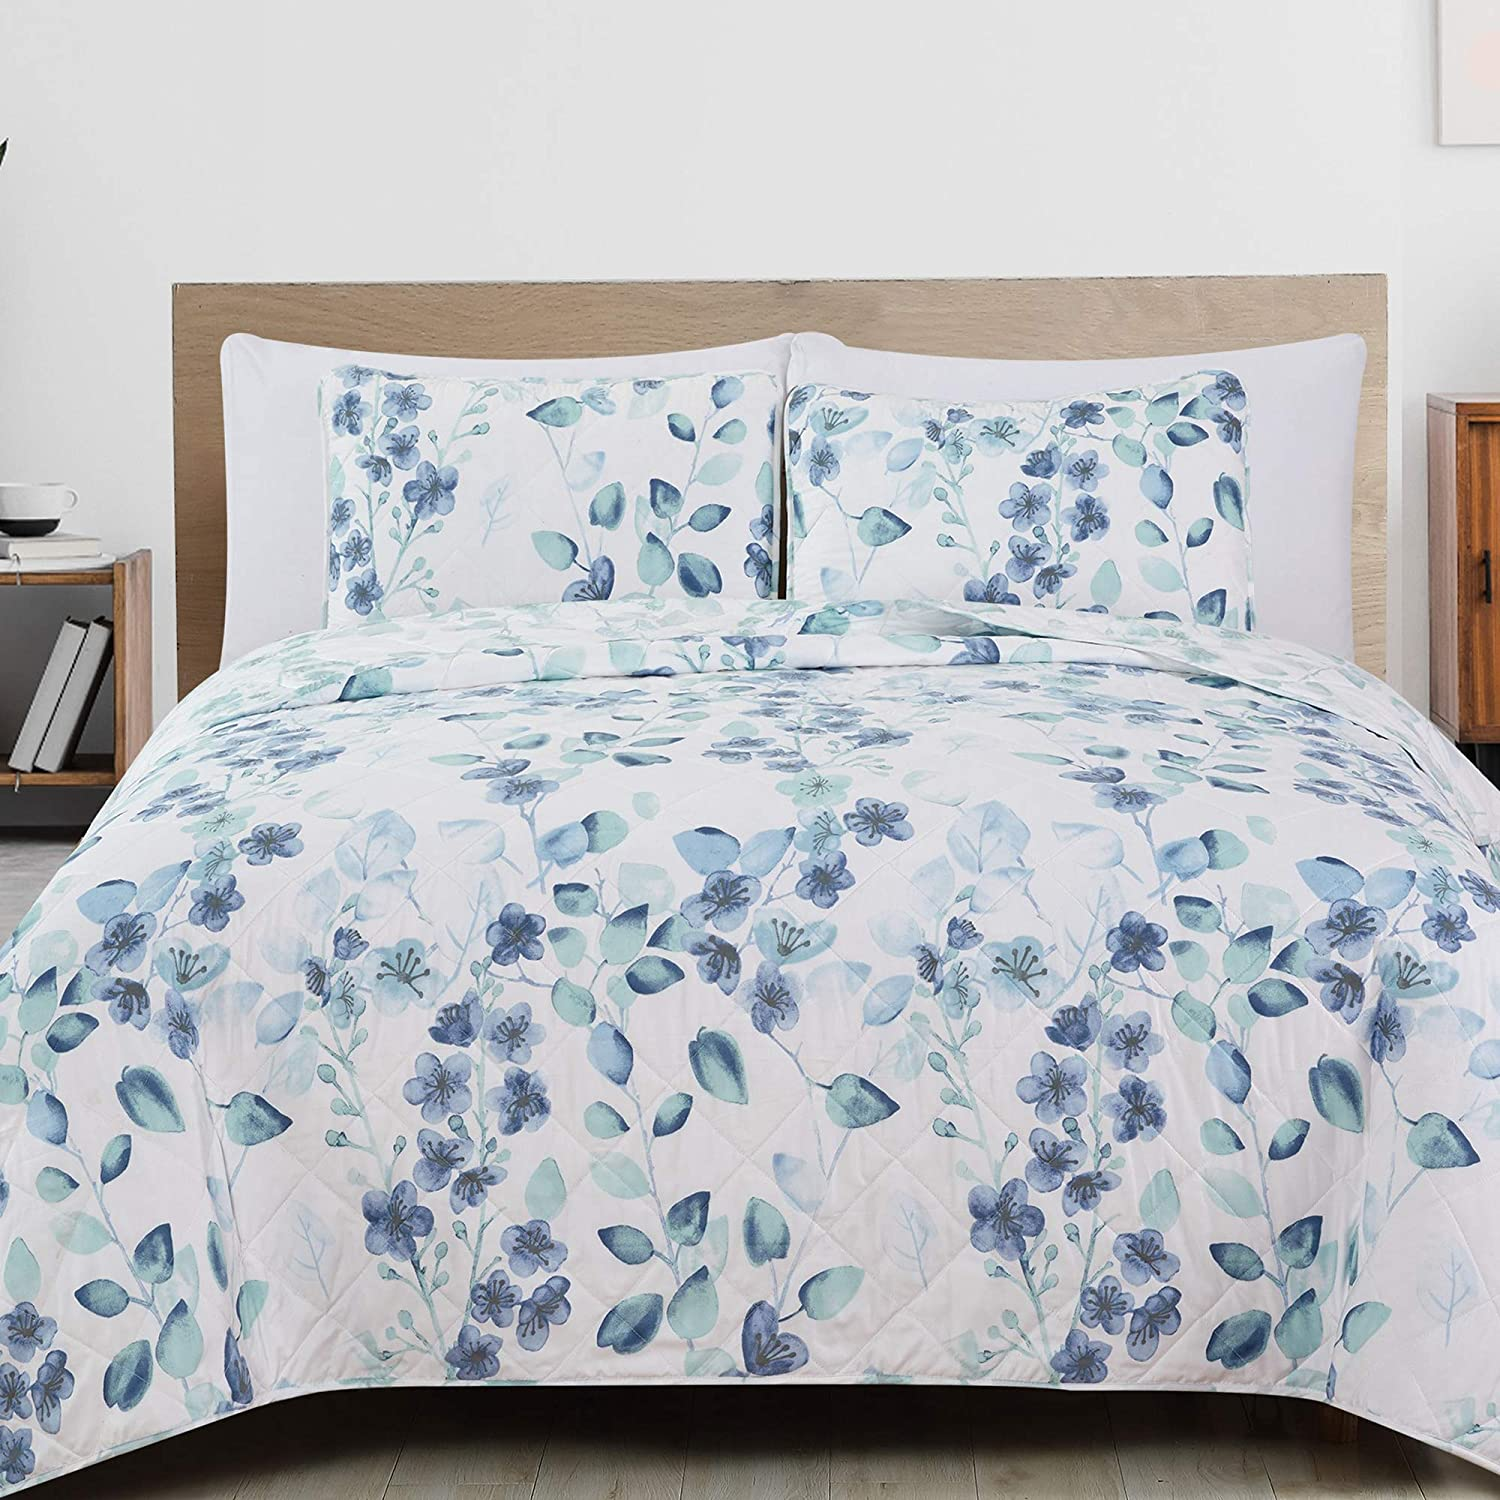 3-Piece Reversible Quilt Set with Shams. All-Season Microfiber Bedspread with Floral Print Pattern. Miranda Collection (King)